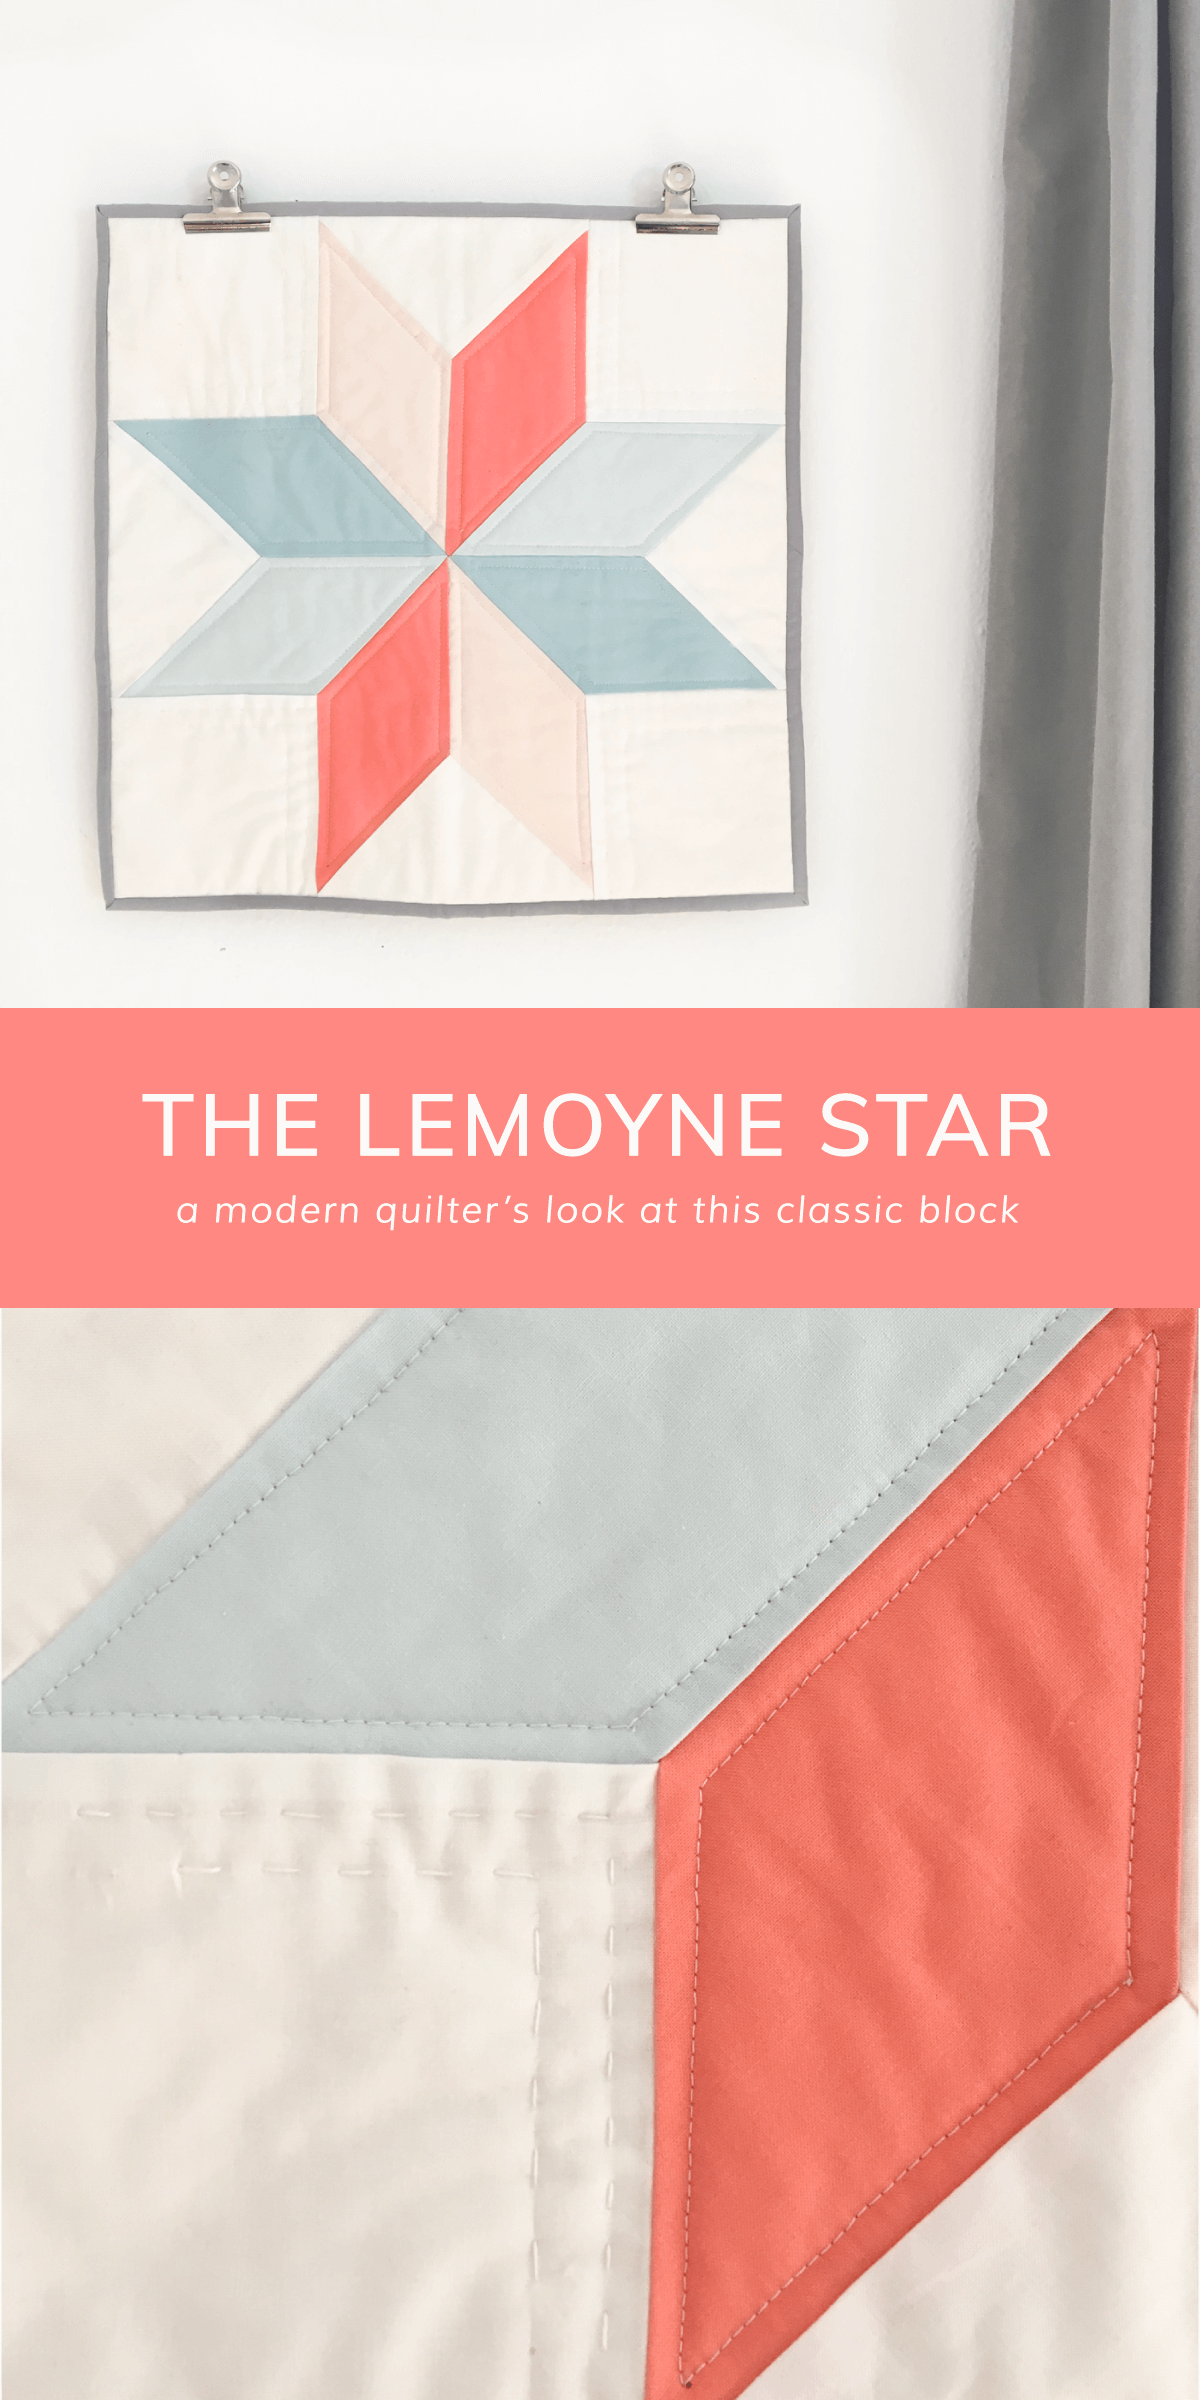 A Modern quilter's look at the LeMoyne Star, a classic quilting block